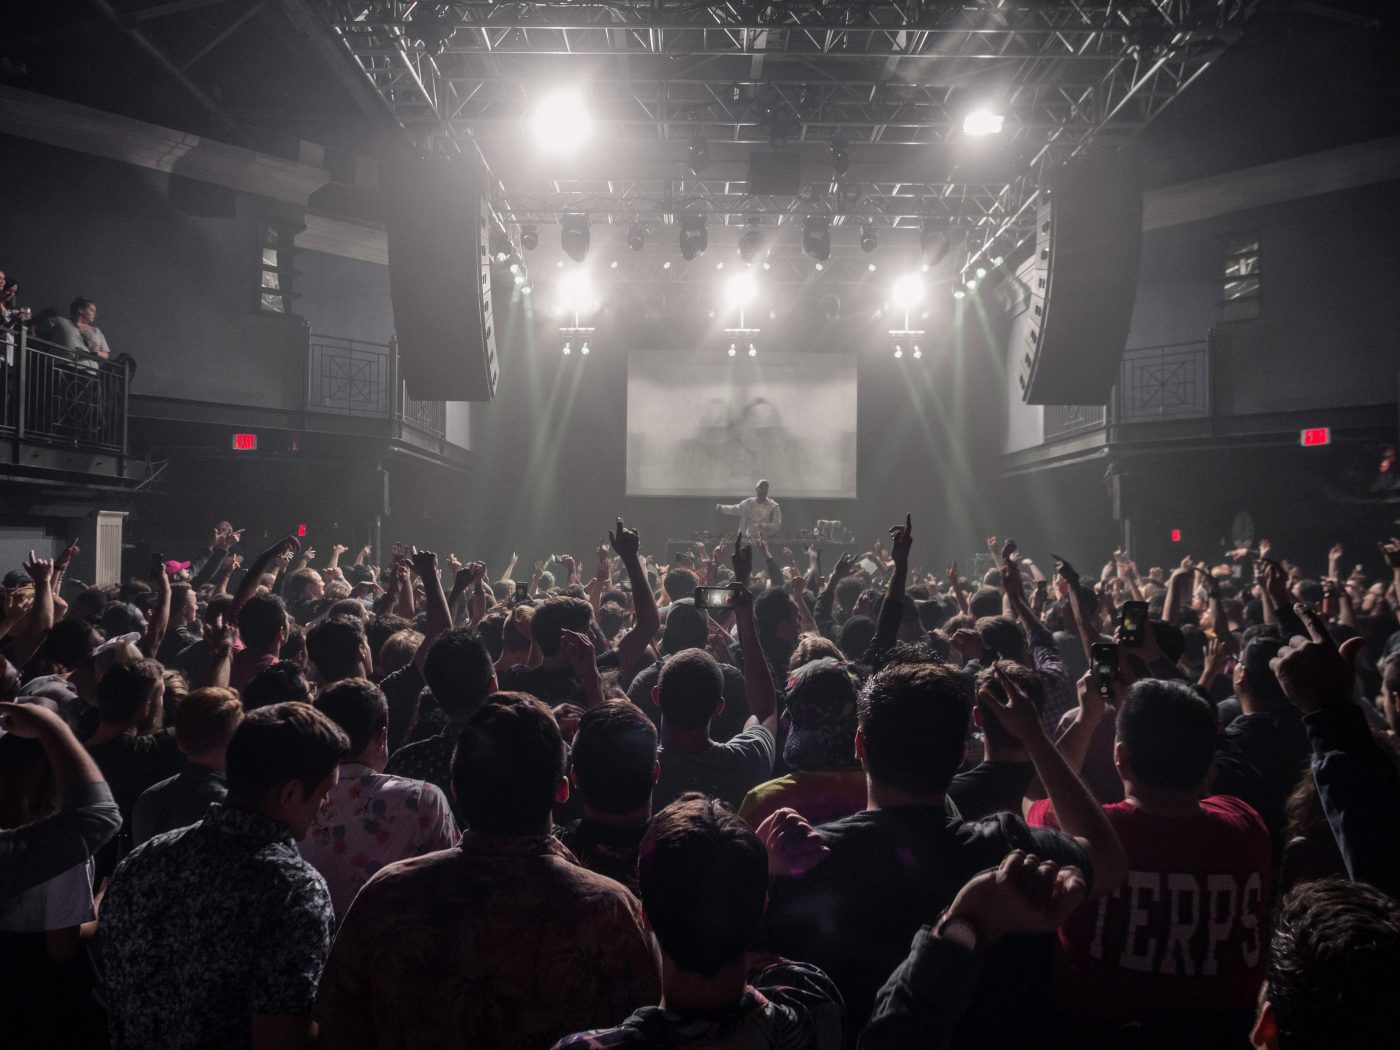 What So Not : 9:30 Club | Photos | LIVING LIFE FEARLESS